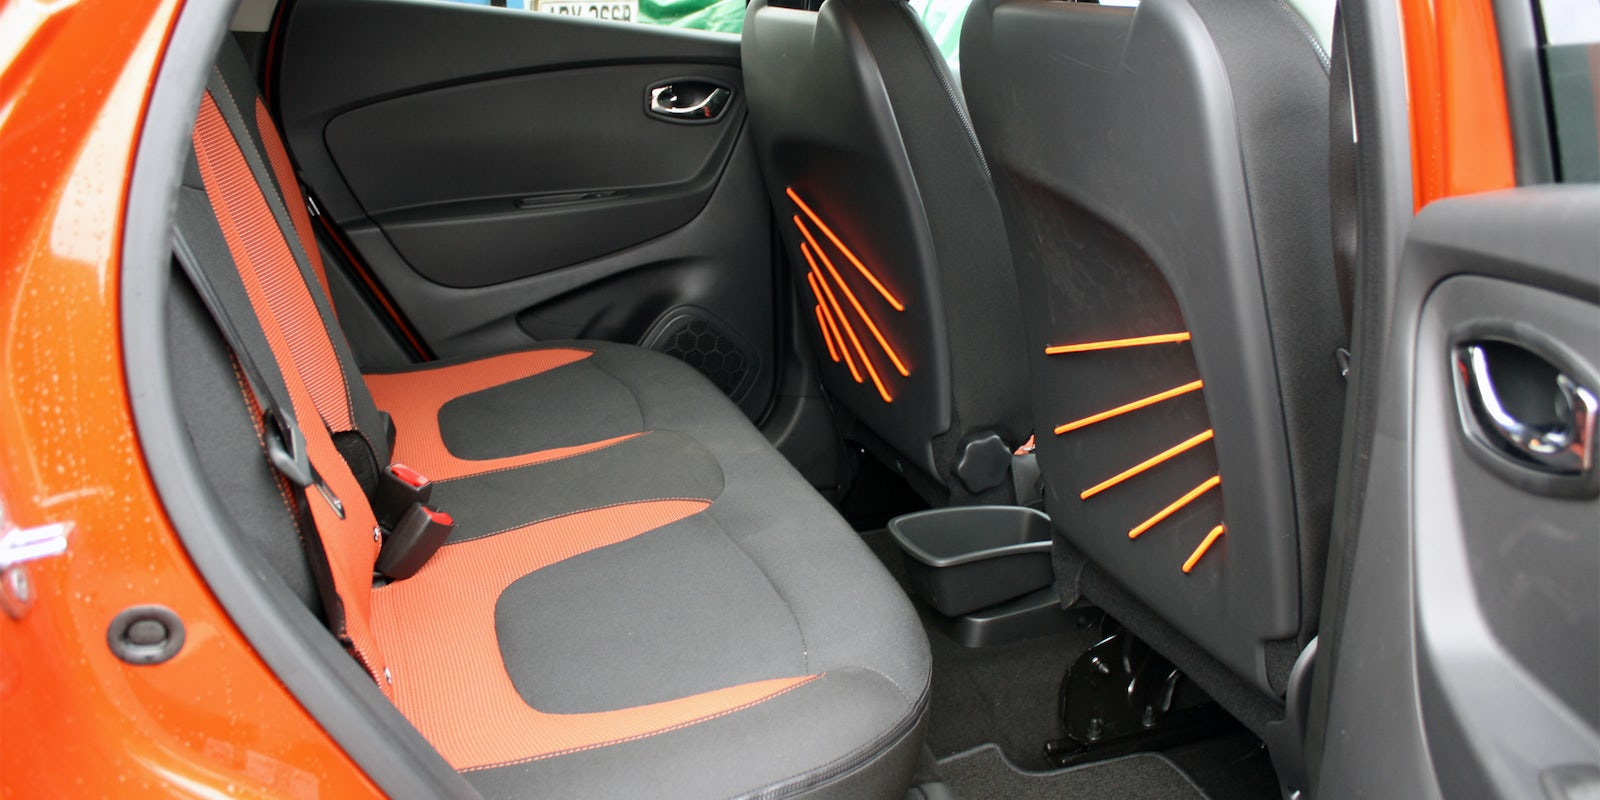 Renault Captur Boot Space & Dimensions | carwow